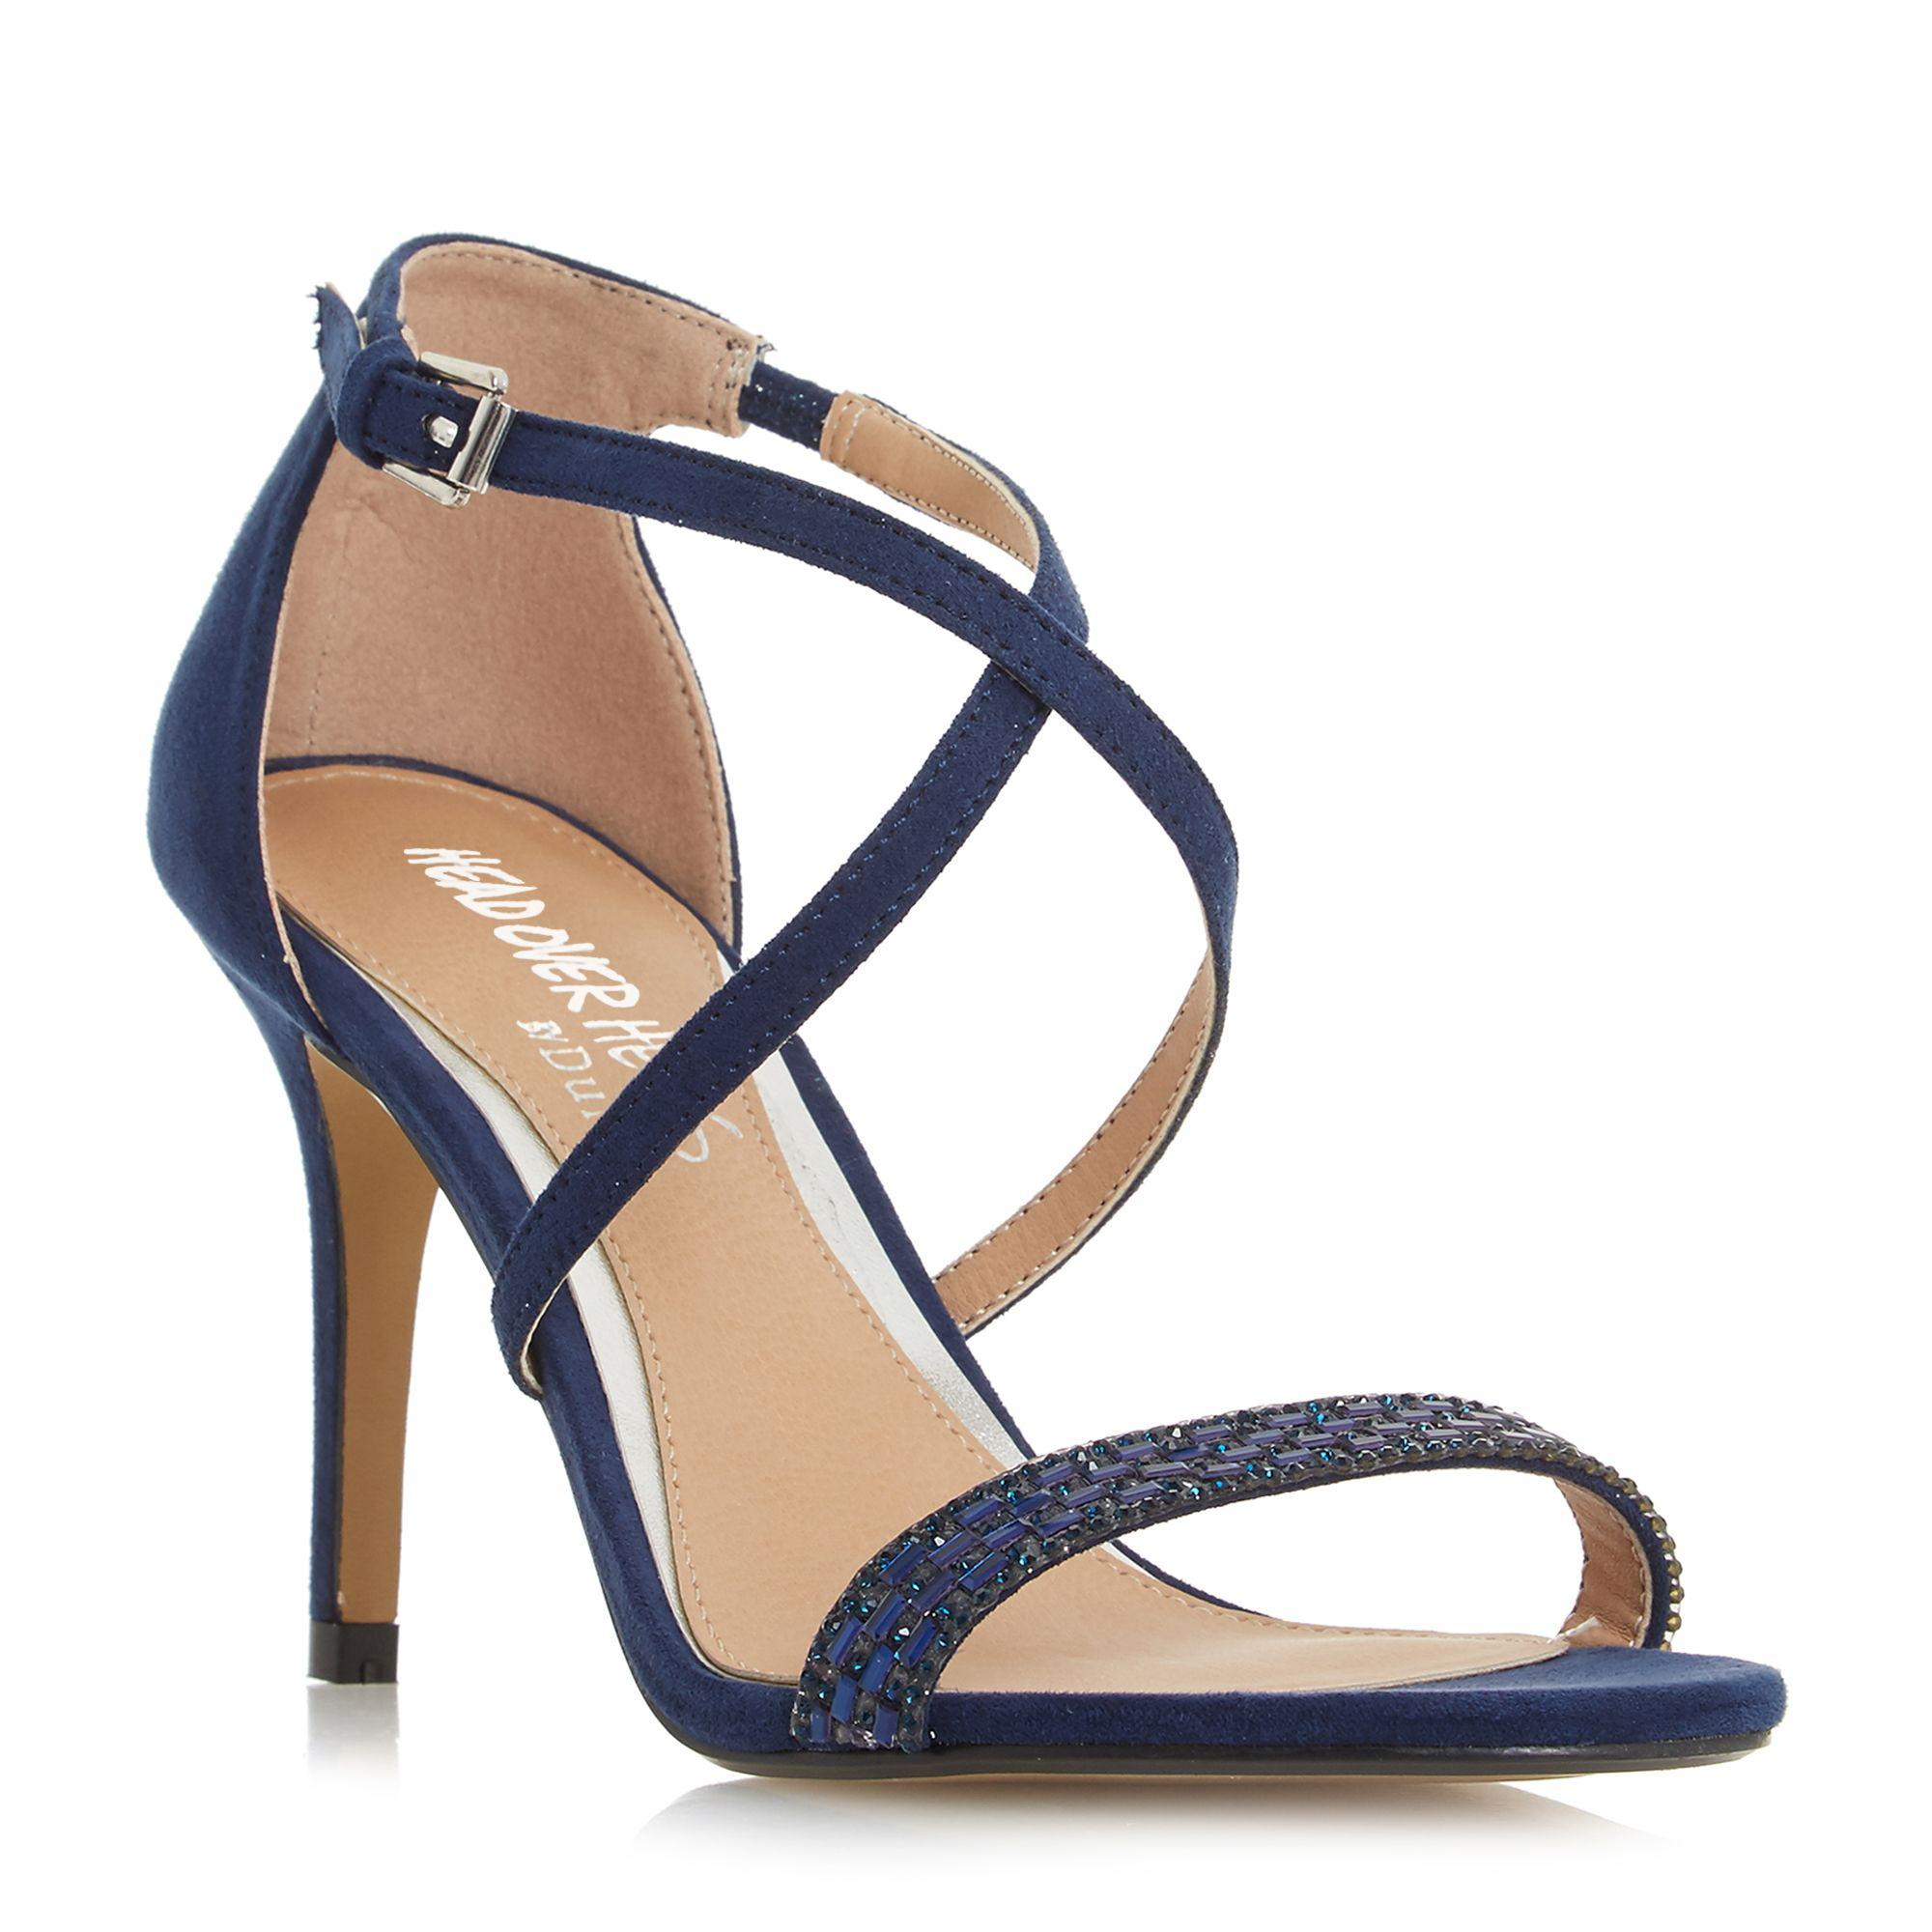 a72e9f9a82b8ad Dune Navy  missy  Ankle Strap Sandals in Blue - Lyst